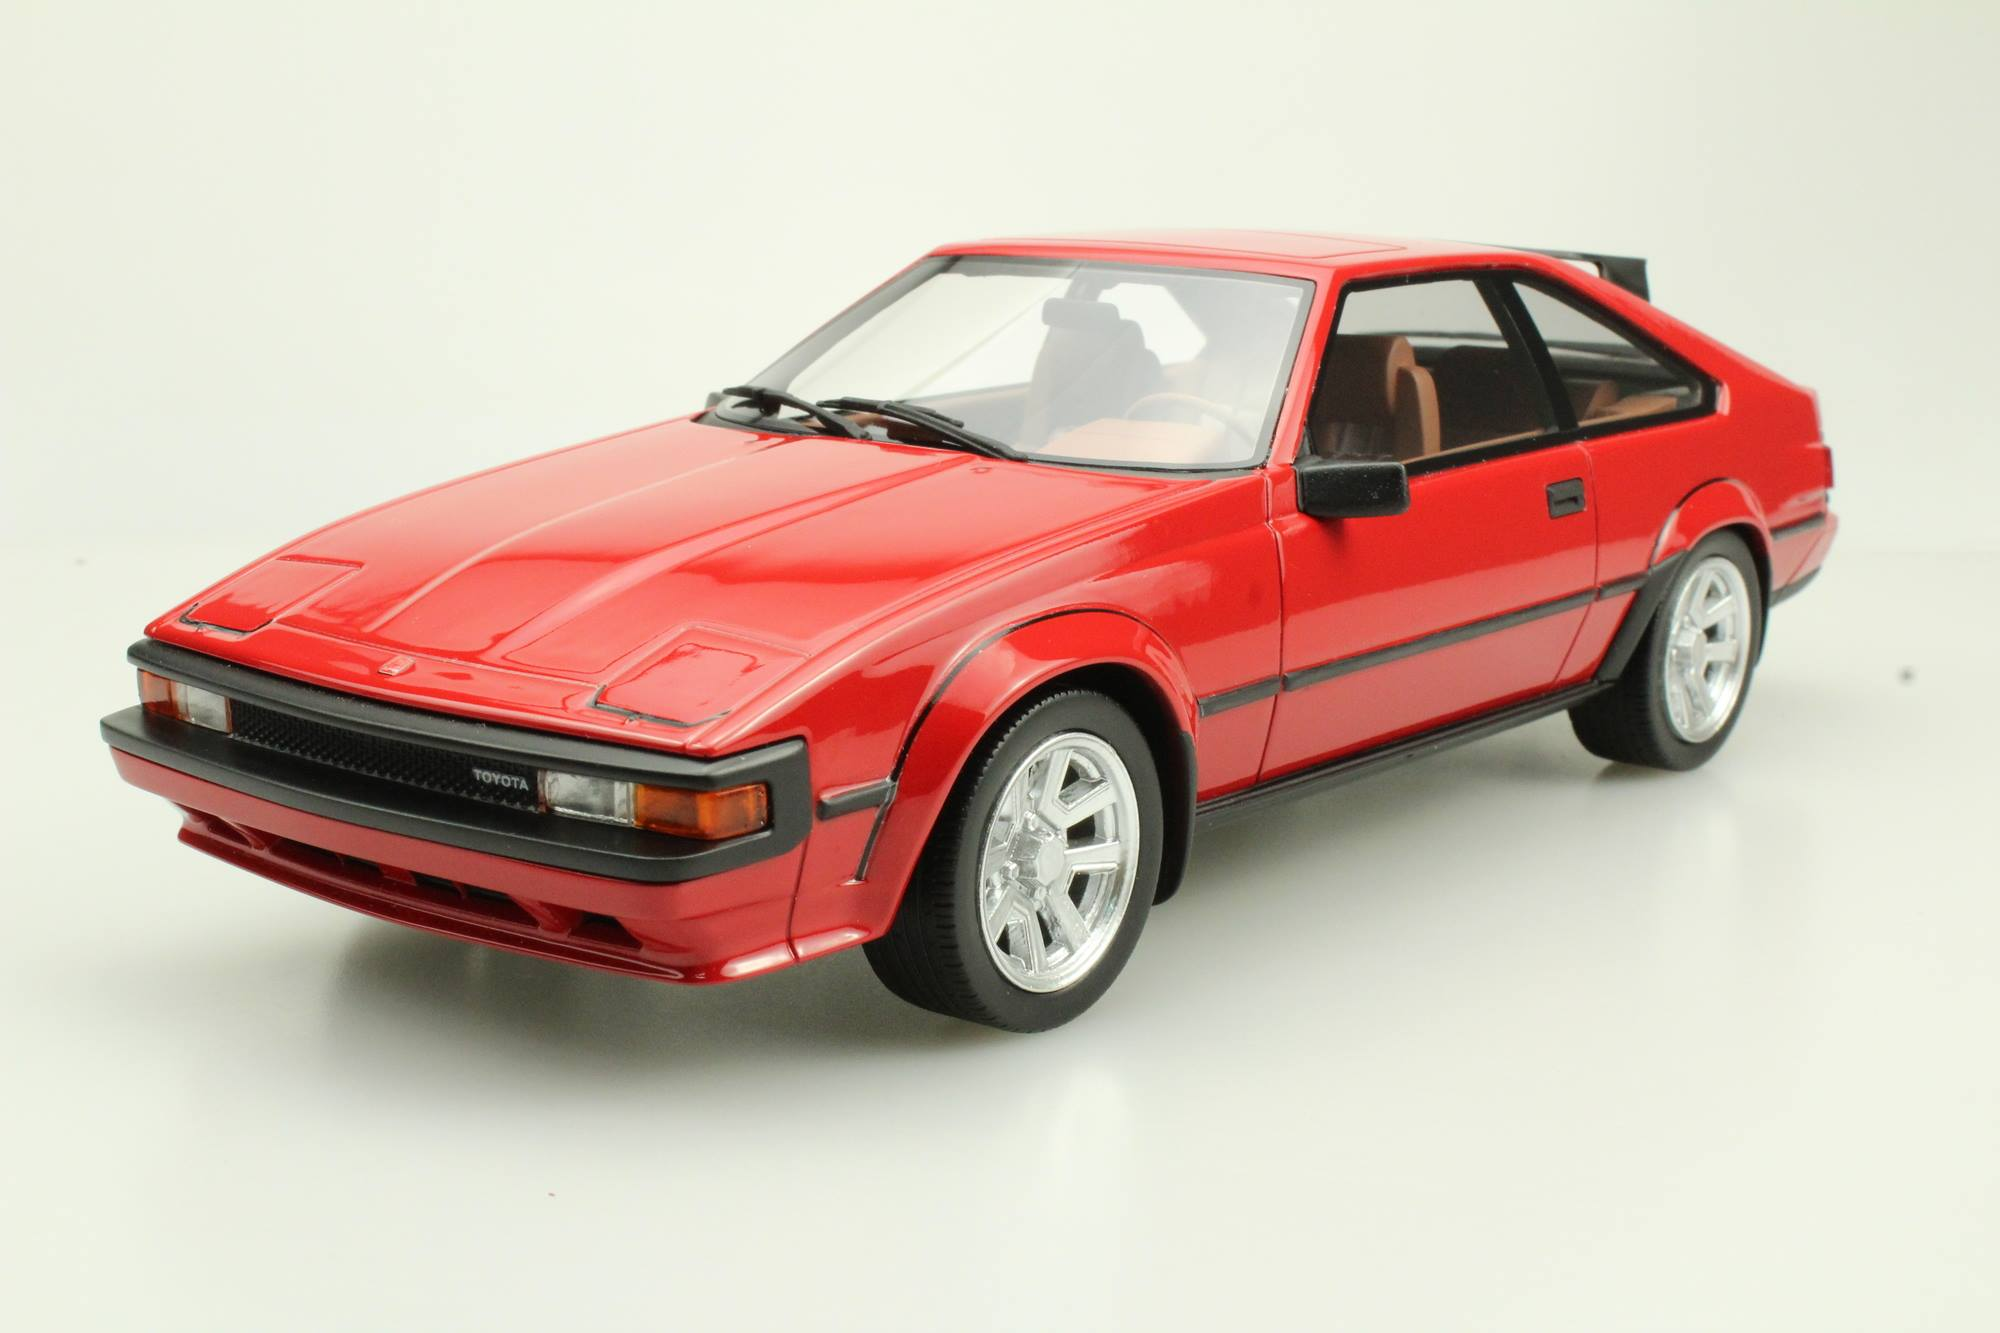 Minicars  Ls Collectibles U2019 1 18 Toyota Celica Supra Is Now